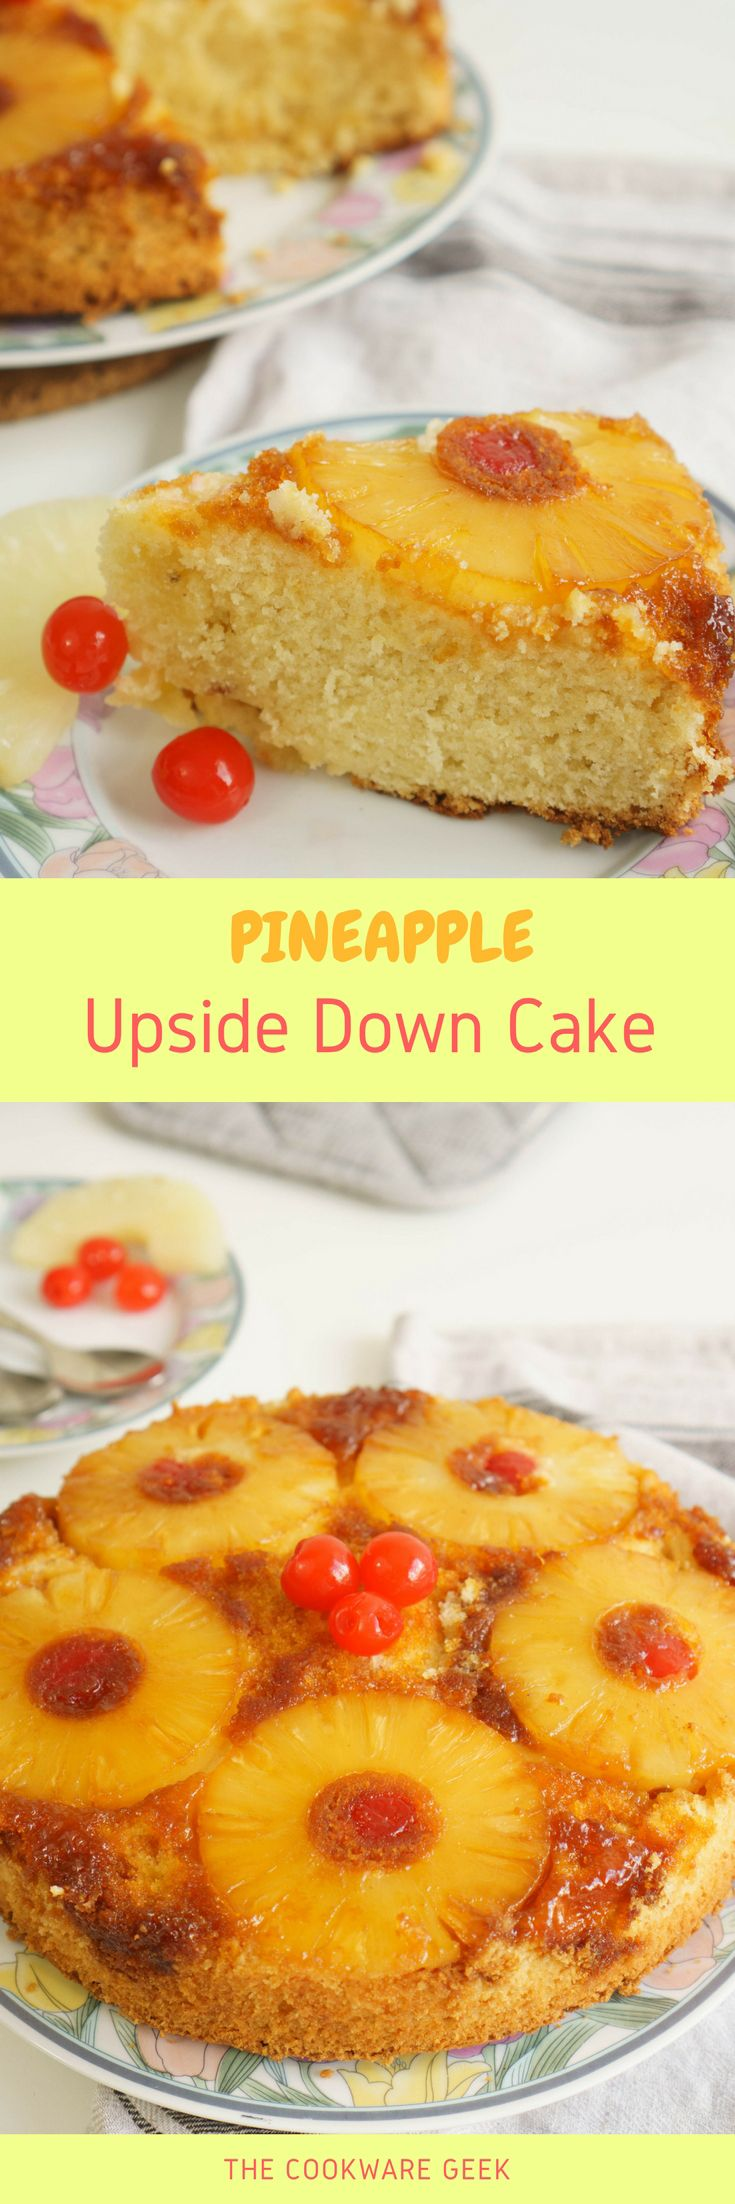 Jump to RecipePrint RecipeThis pineapple upside down cake recipe has been in my family for a long time. It is one of our favorite cakes to eat at the family weekend reunion with a big cup of coffee —Latinoamericanos, you know?   The main difference between this pineapple upside down cake and the rest... Read More